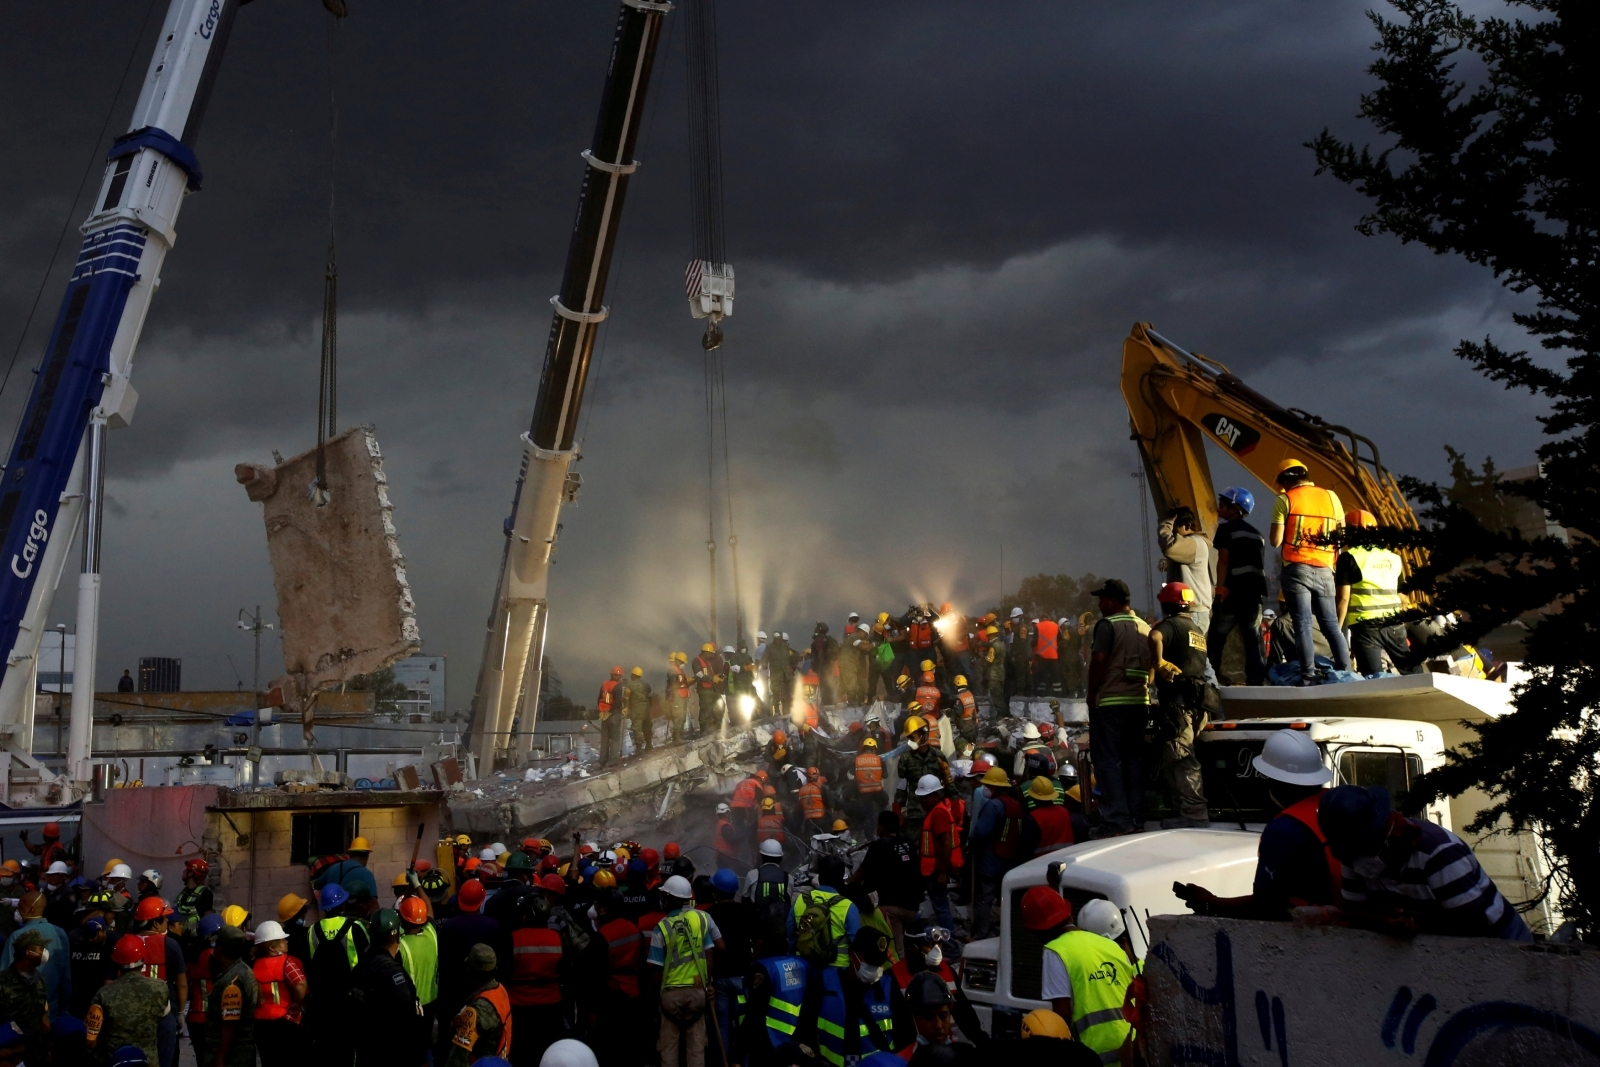 Reuters stories behind the news photos 2017